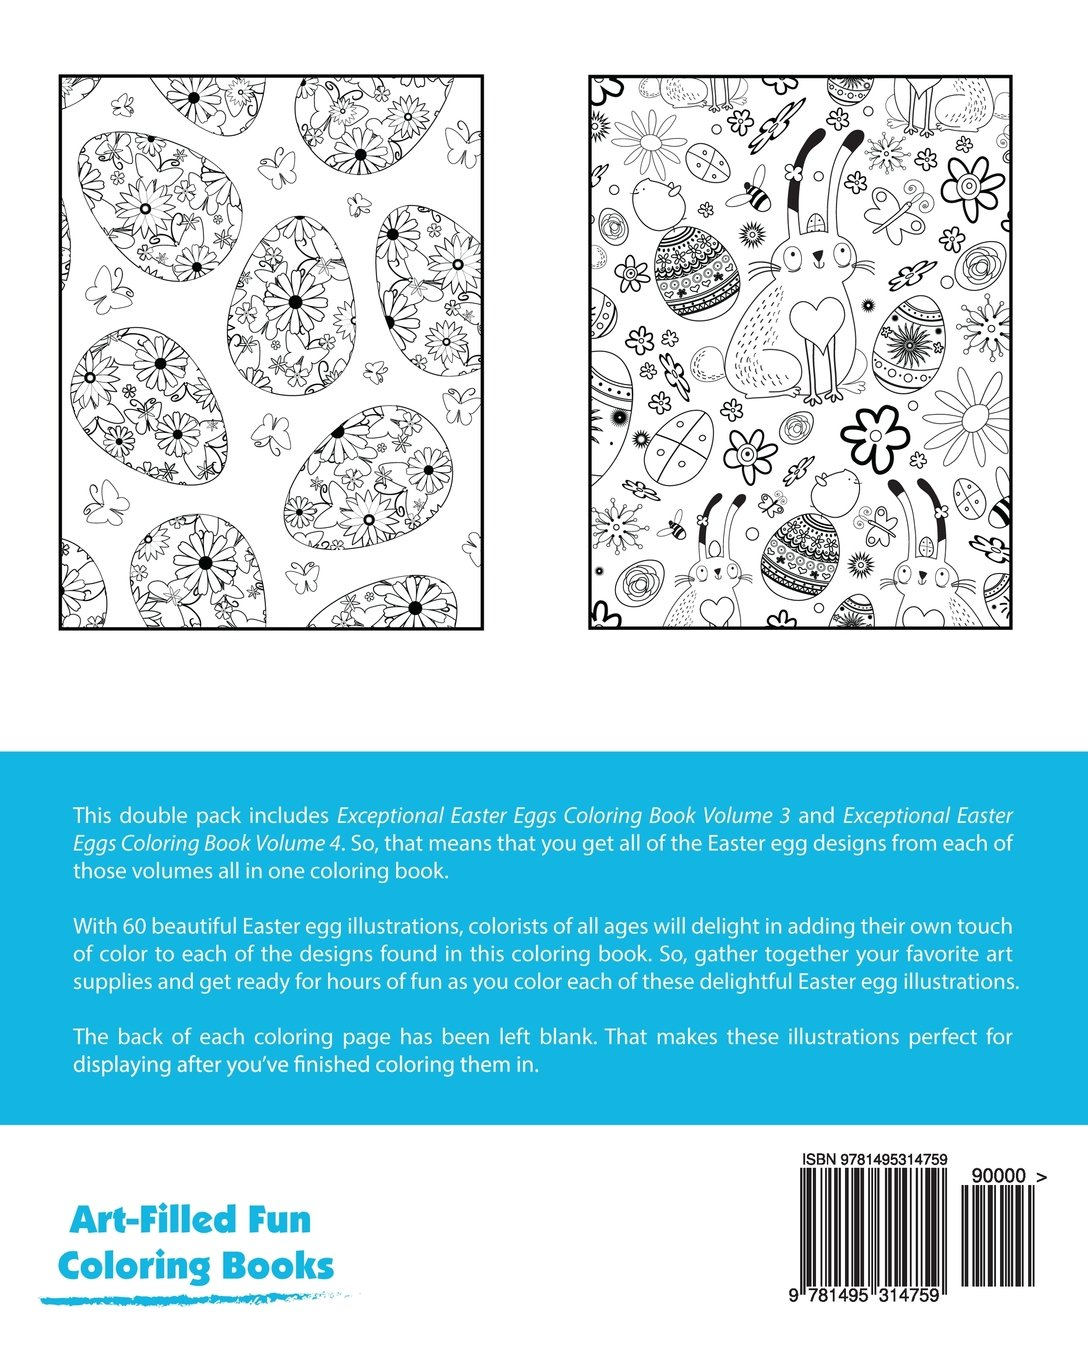 Exceptional Easter Eggs Coloring Book Double Pack (Volumes 3 & 4 ...